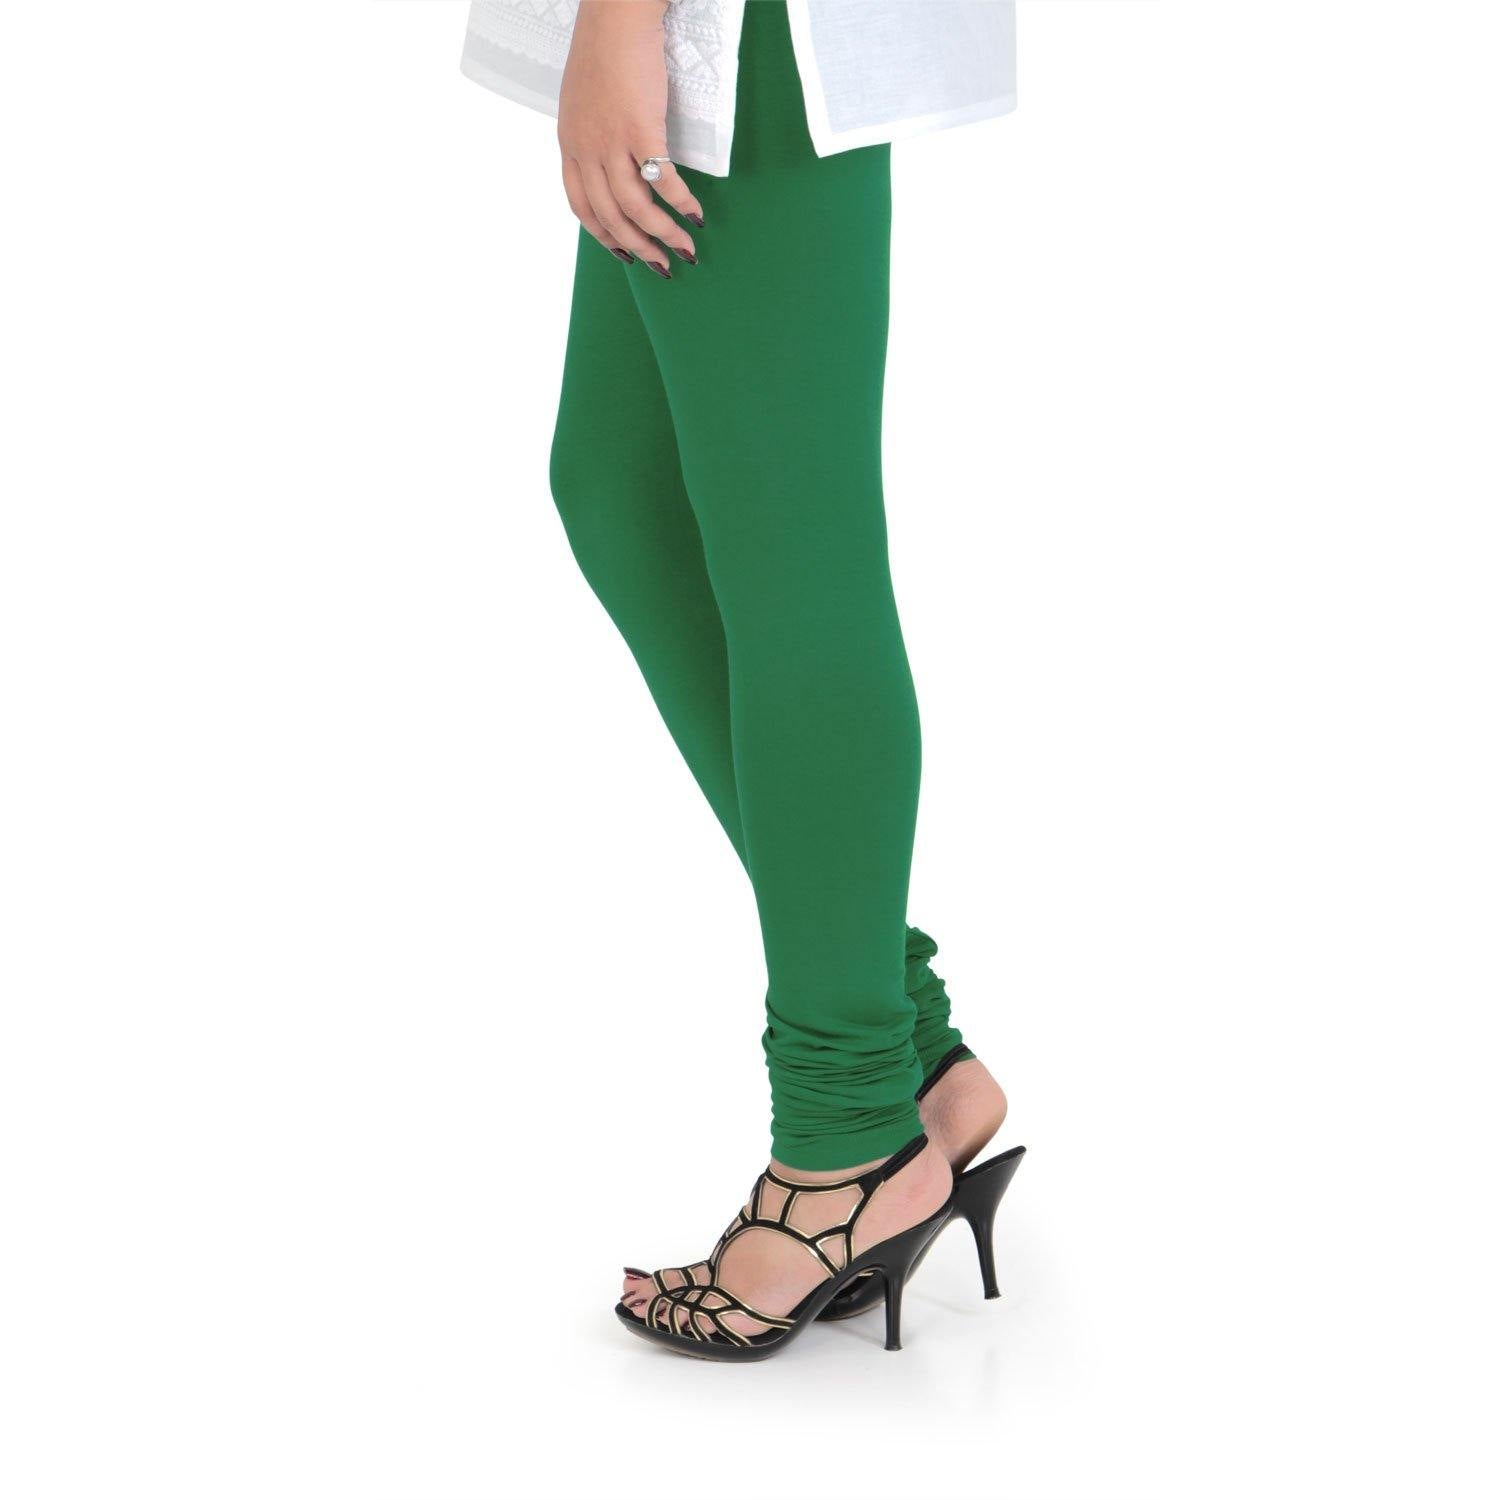 Vami Women's Cotton Stretchable Churidar Legging - Rich Green